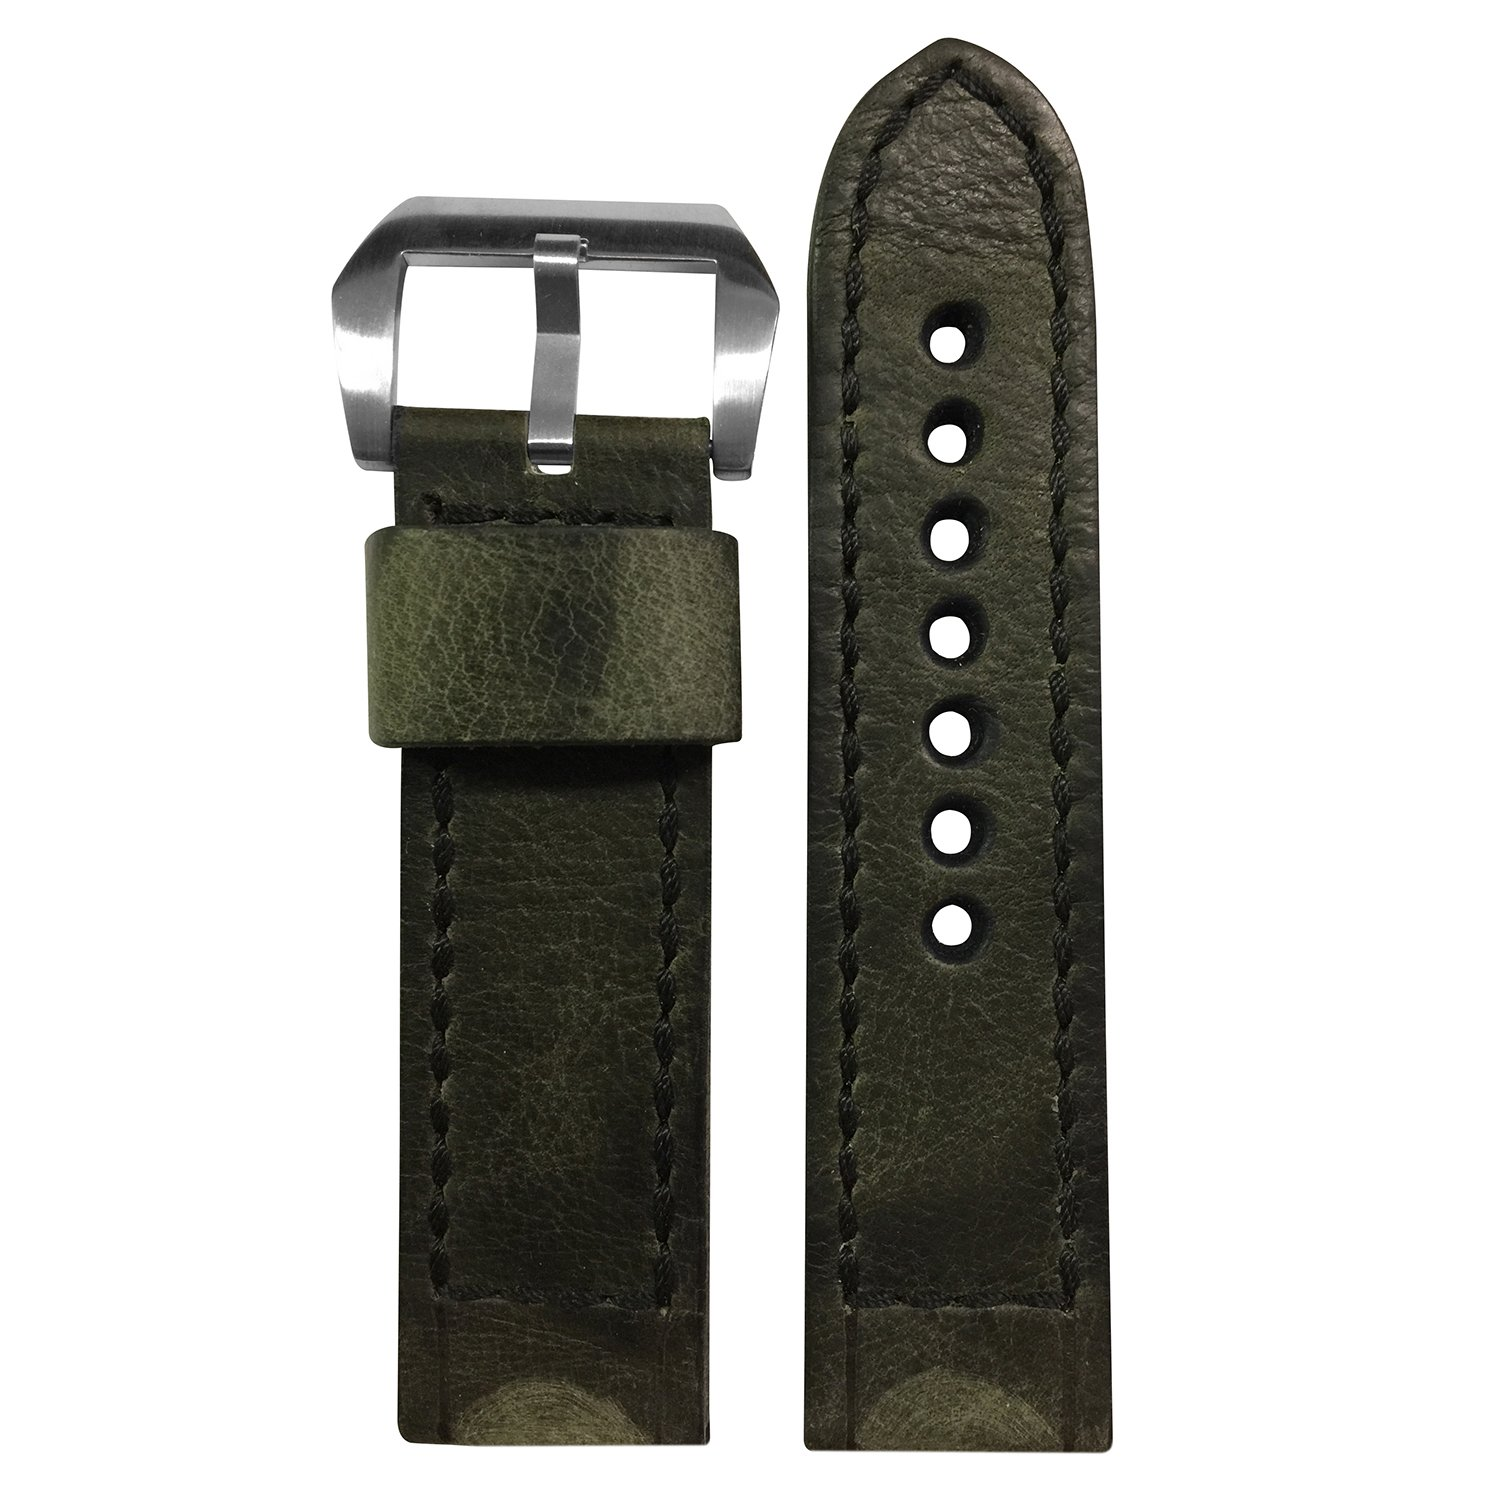 rios1931 Vintage Leather Watch Band withボックスステッチfor Panerai Watches 22x22mm XL Vintage Olive/Black Stitch 22x22mm XL|Vintage Olive/Black Stitch Vintage Olive/Black Stitch 22x22mm XL B074CM5K5D